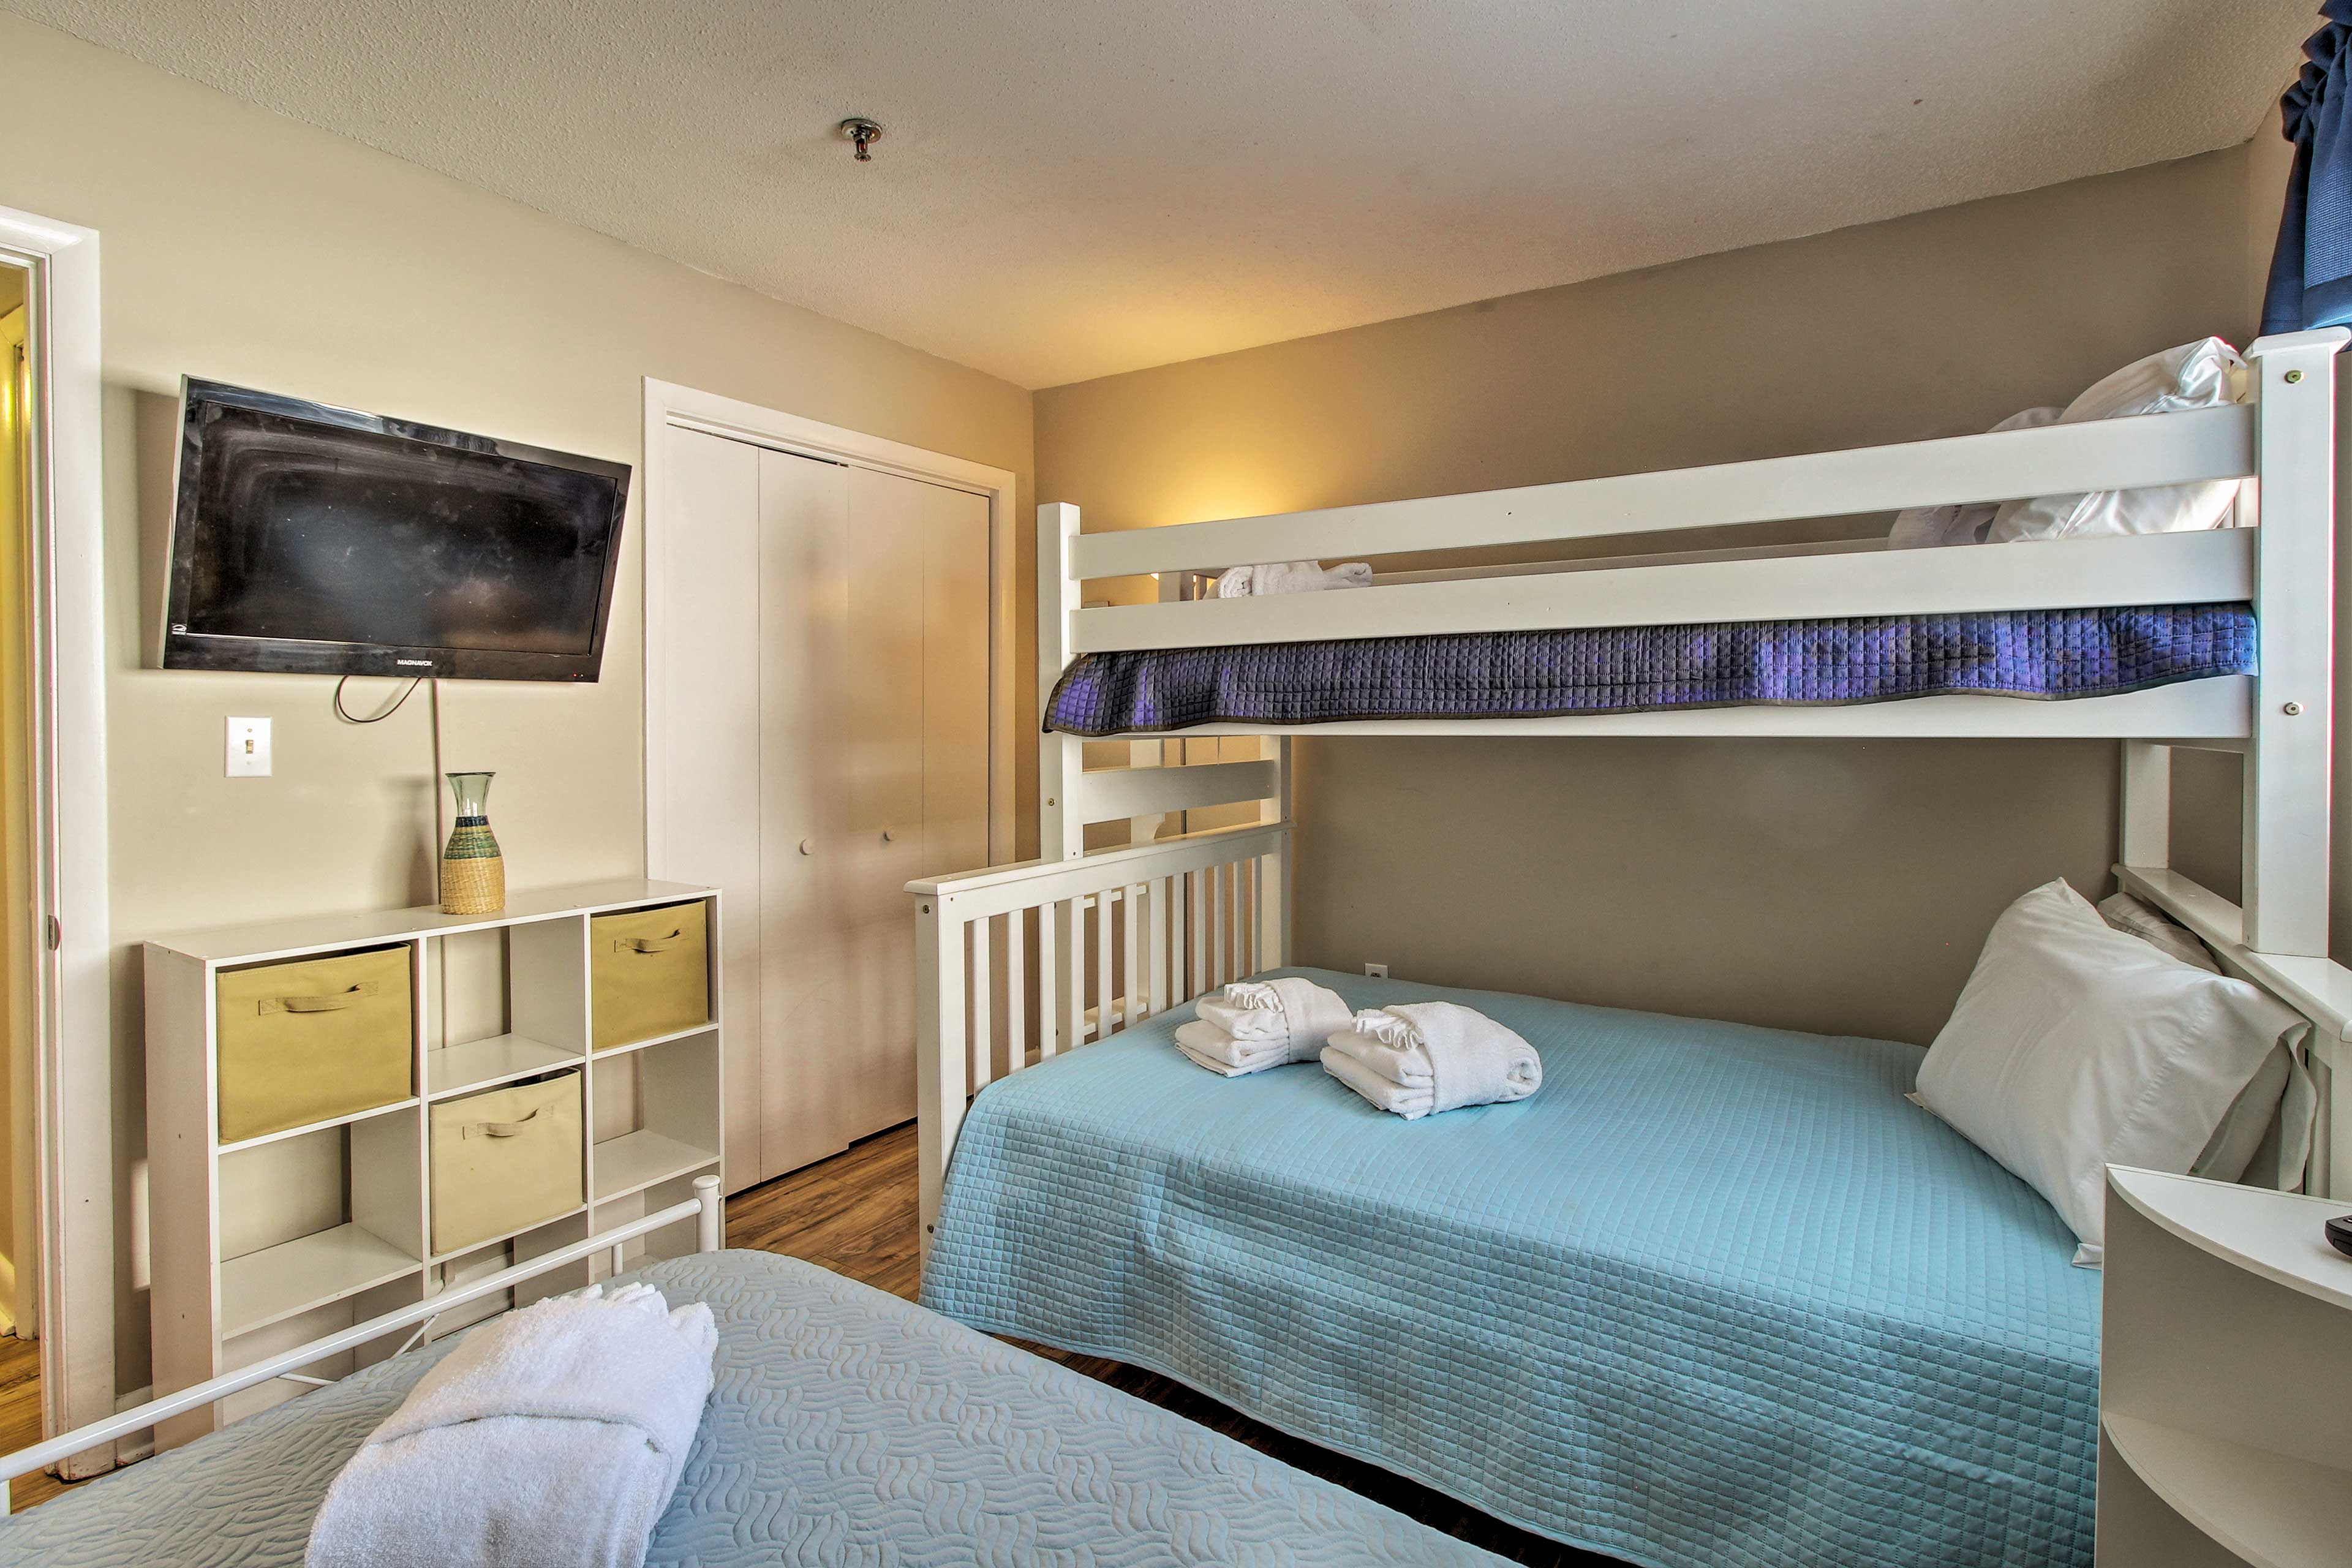 The kids are ensured peaceful slumbers on the twin-over-full bunk and twin bed.